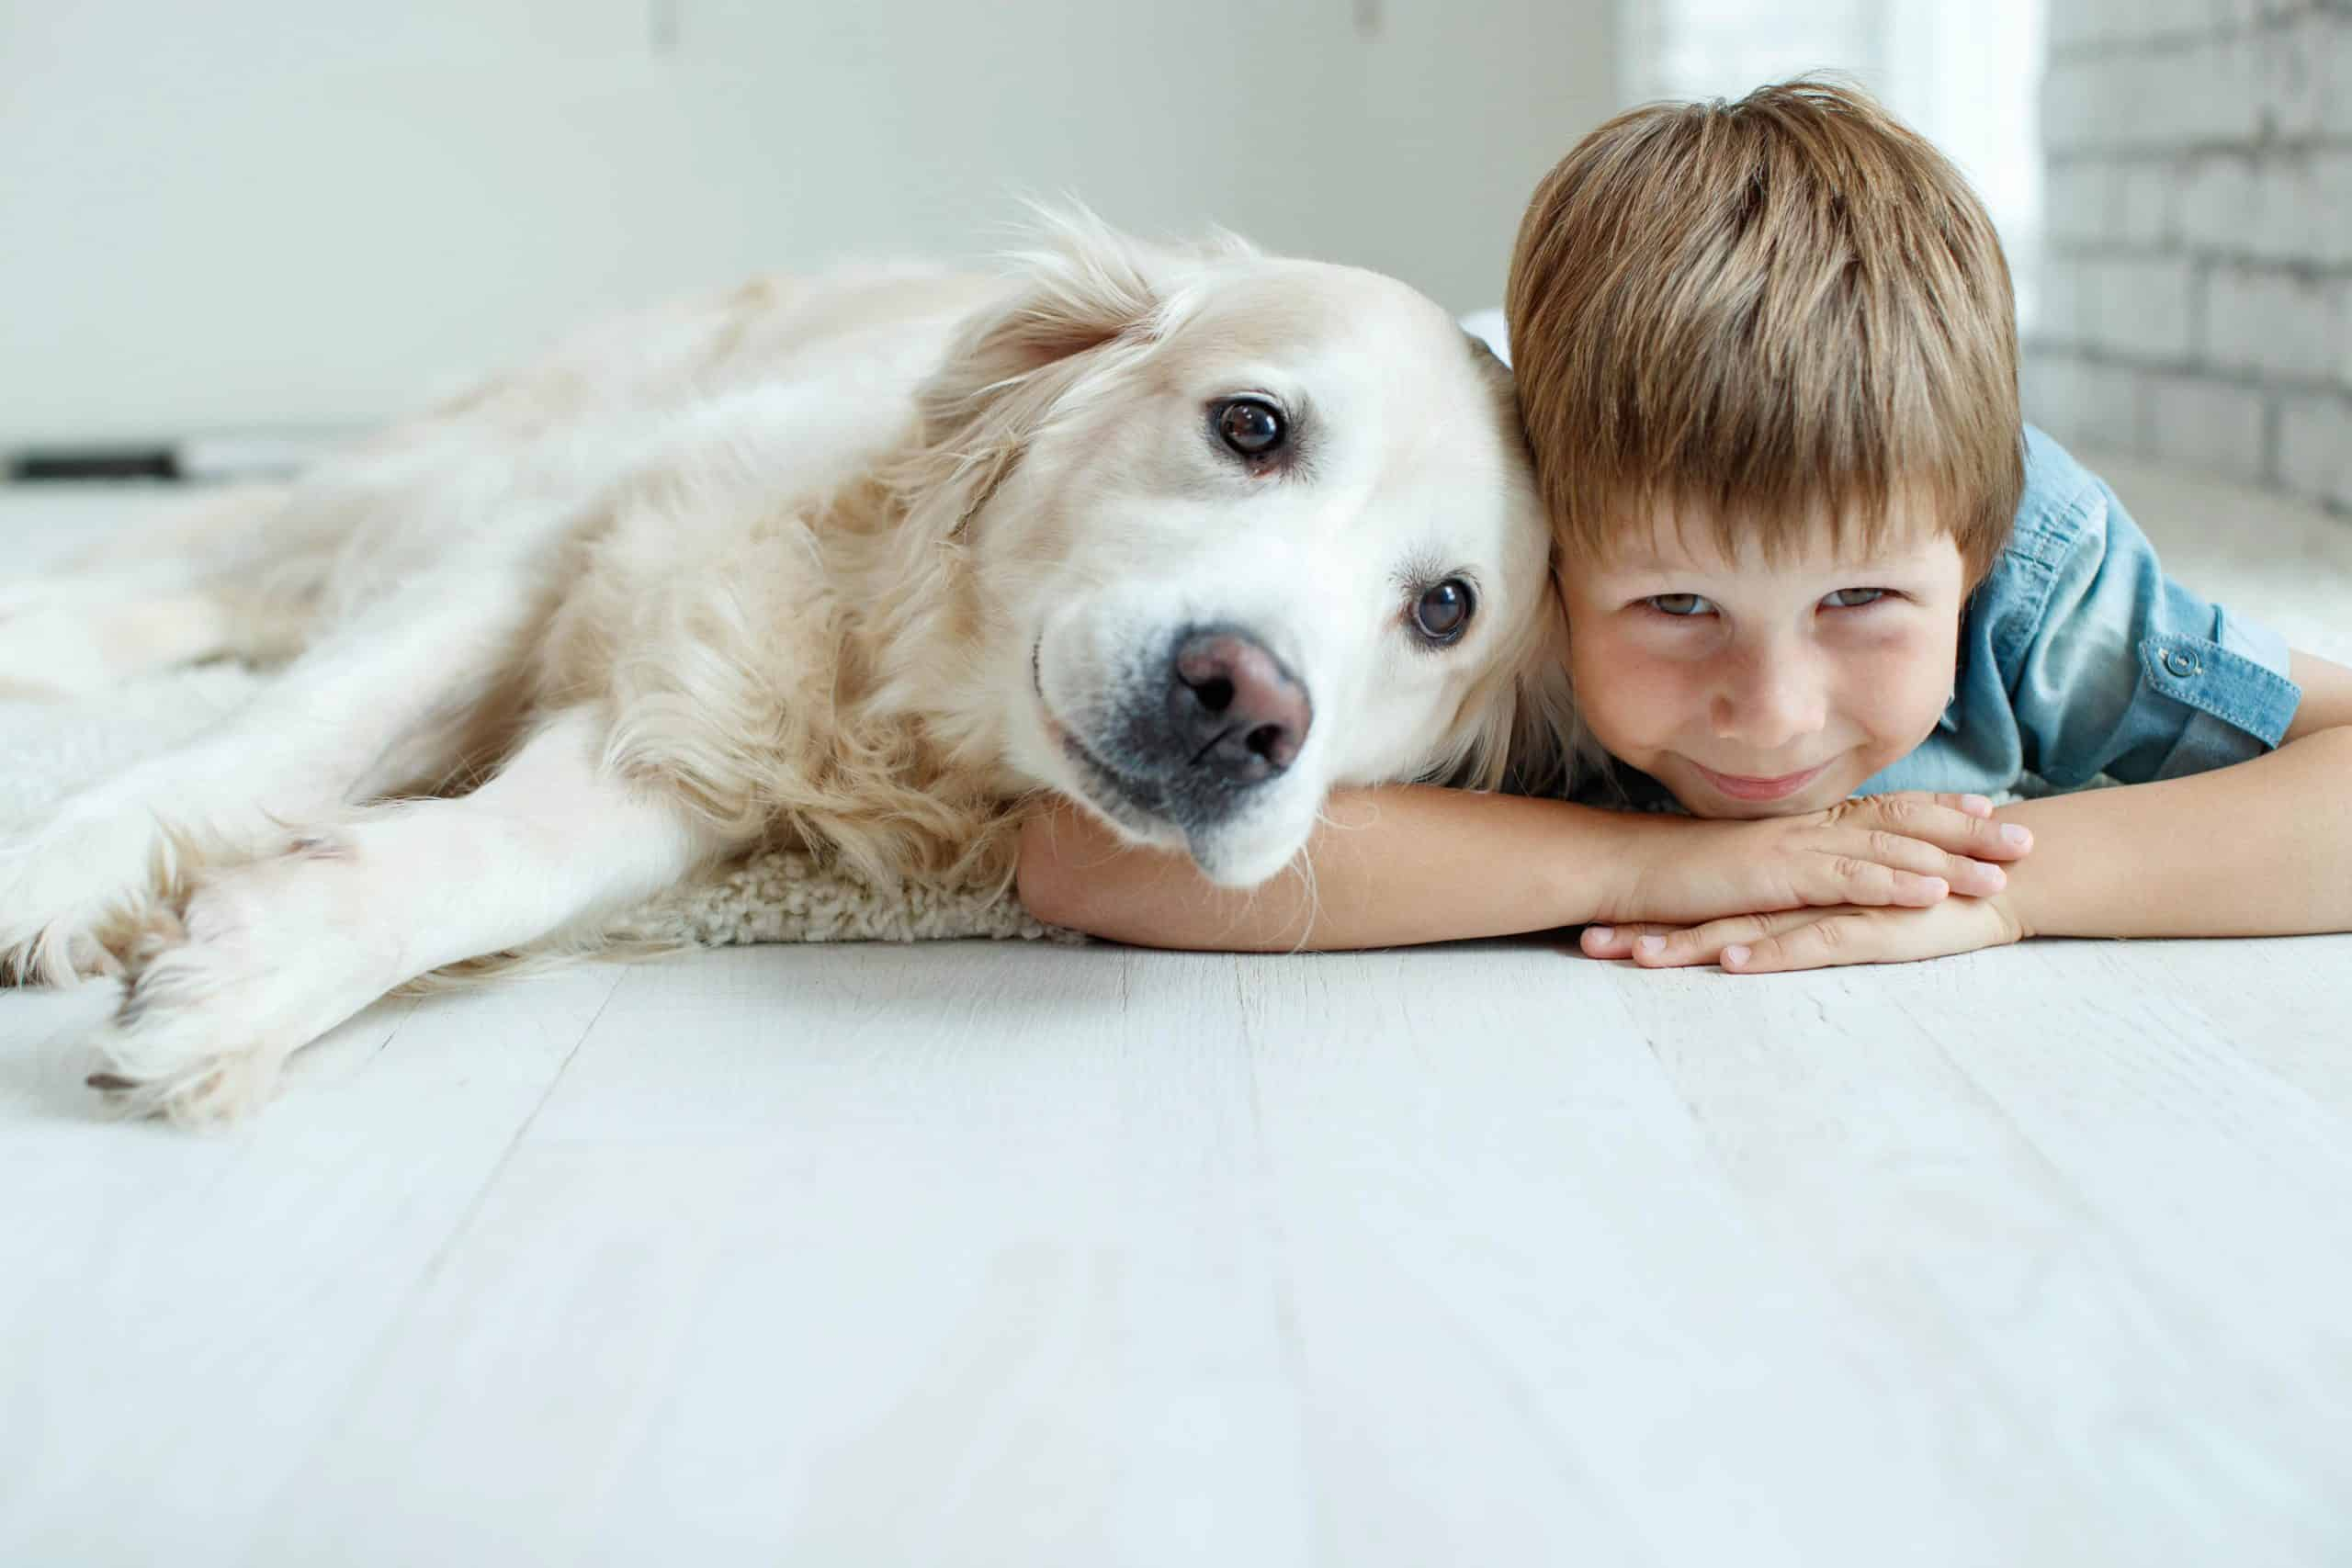 Golden retriever snuggles with his boy on the floor. Golden retrievers are happy, friendly, playful dogs that make great companions for children.